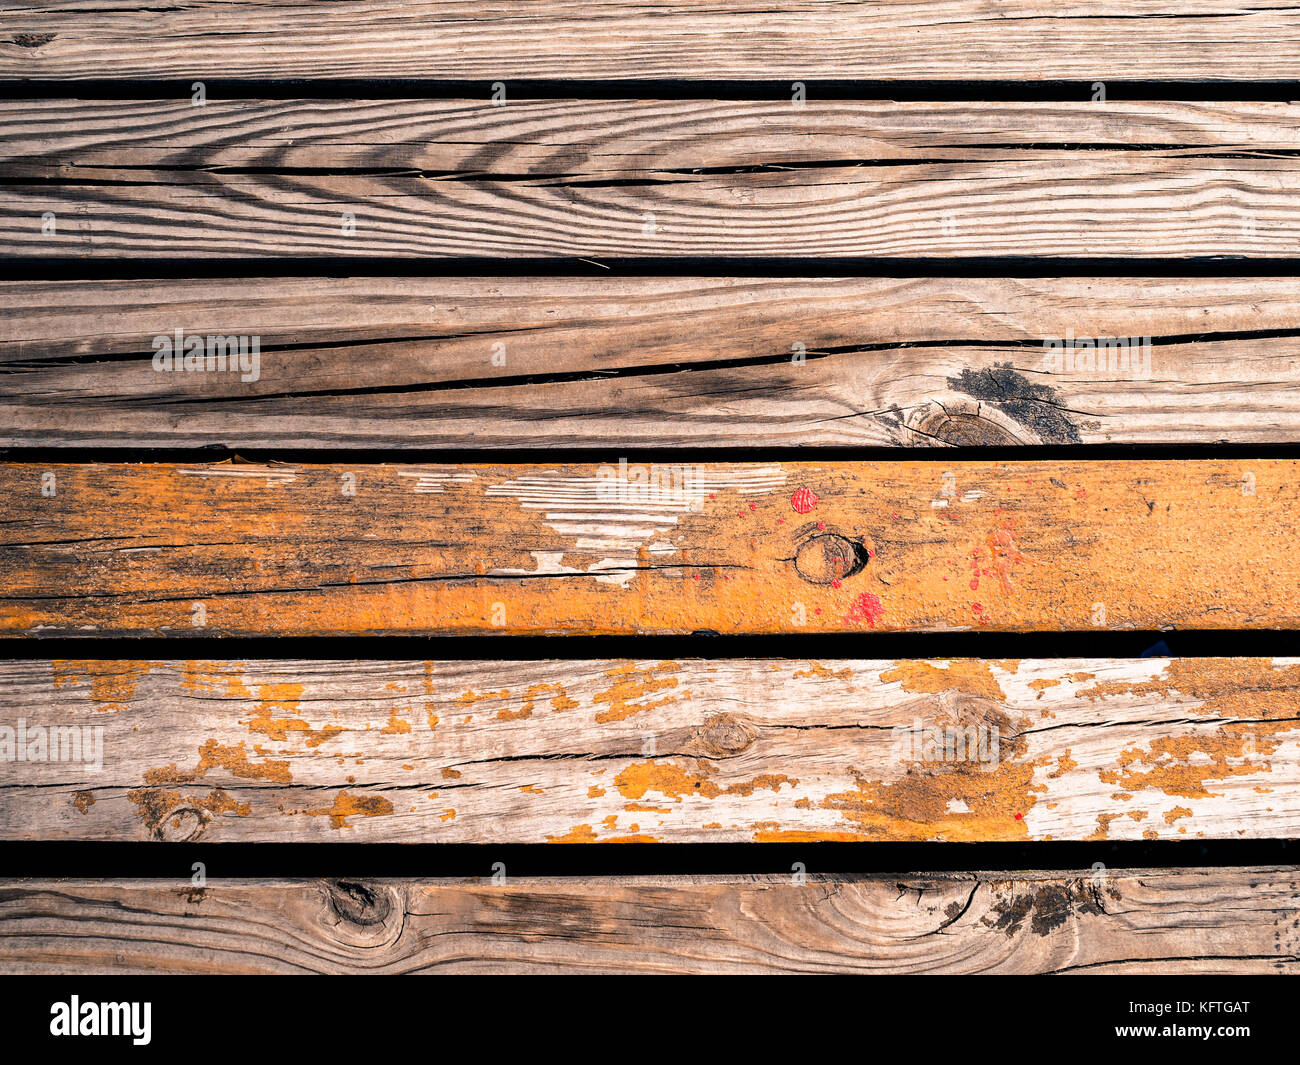 Old wooden planks gritty wood texture background - Stock Image